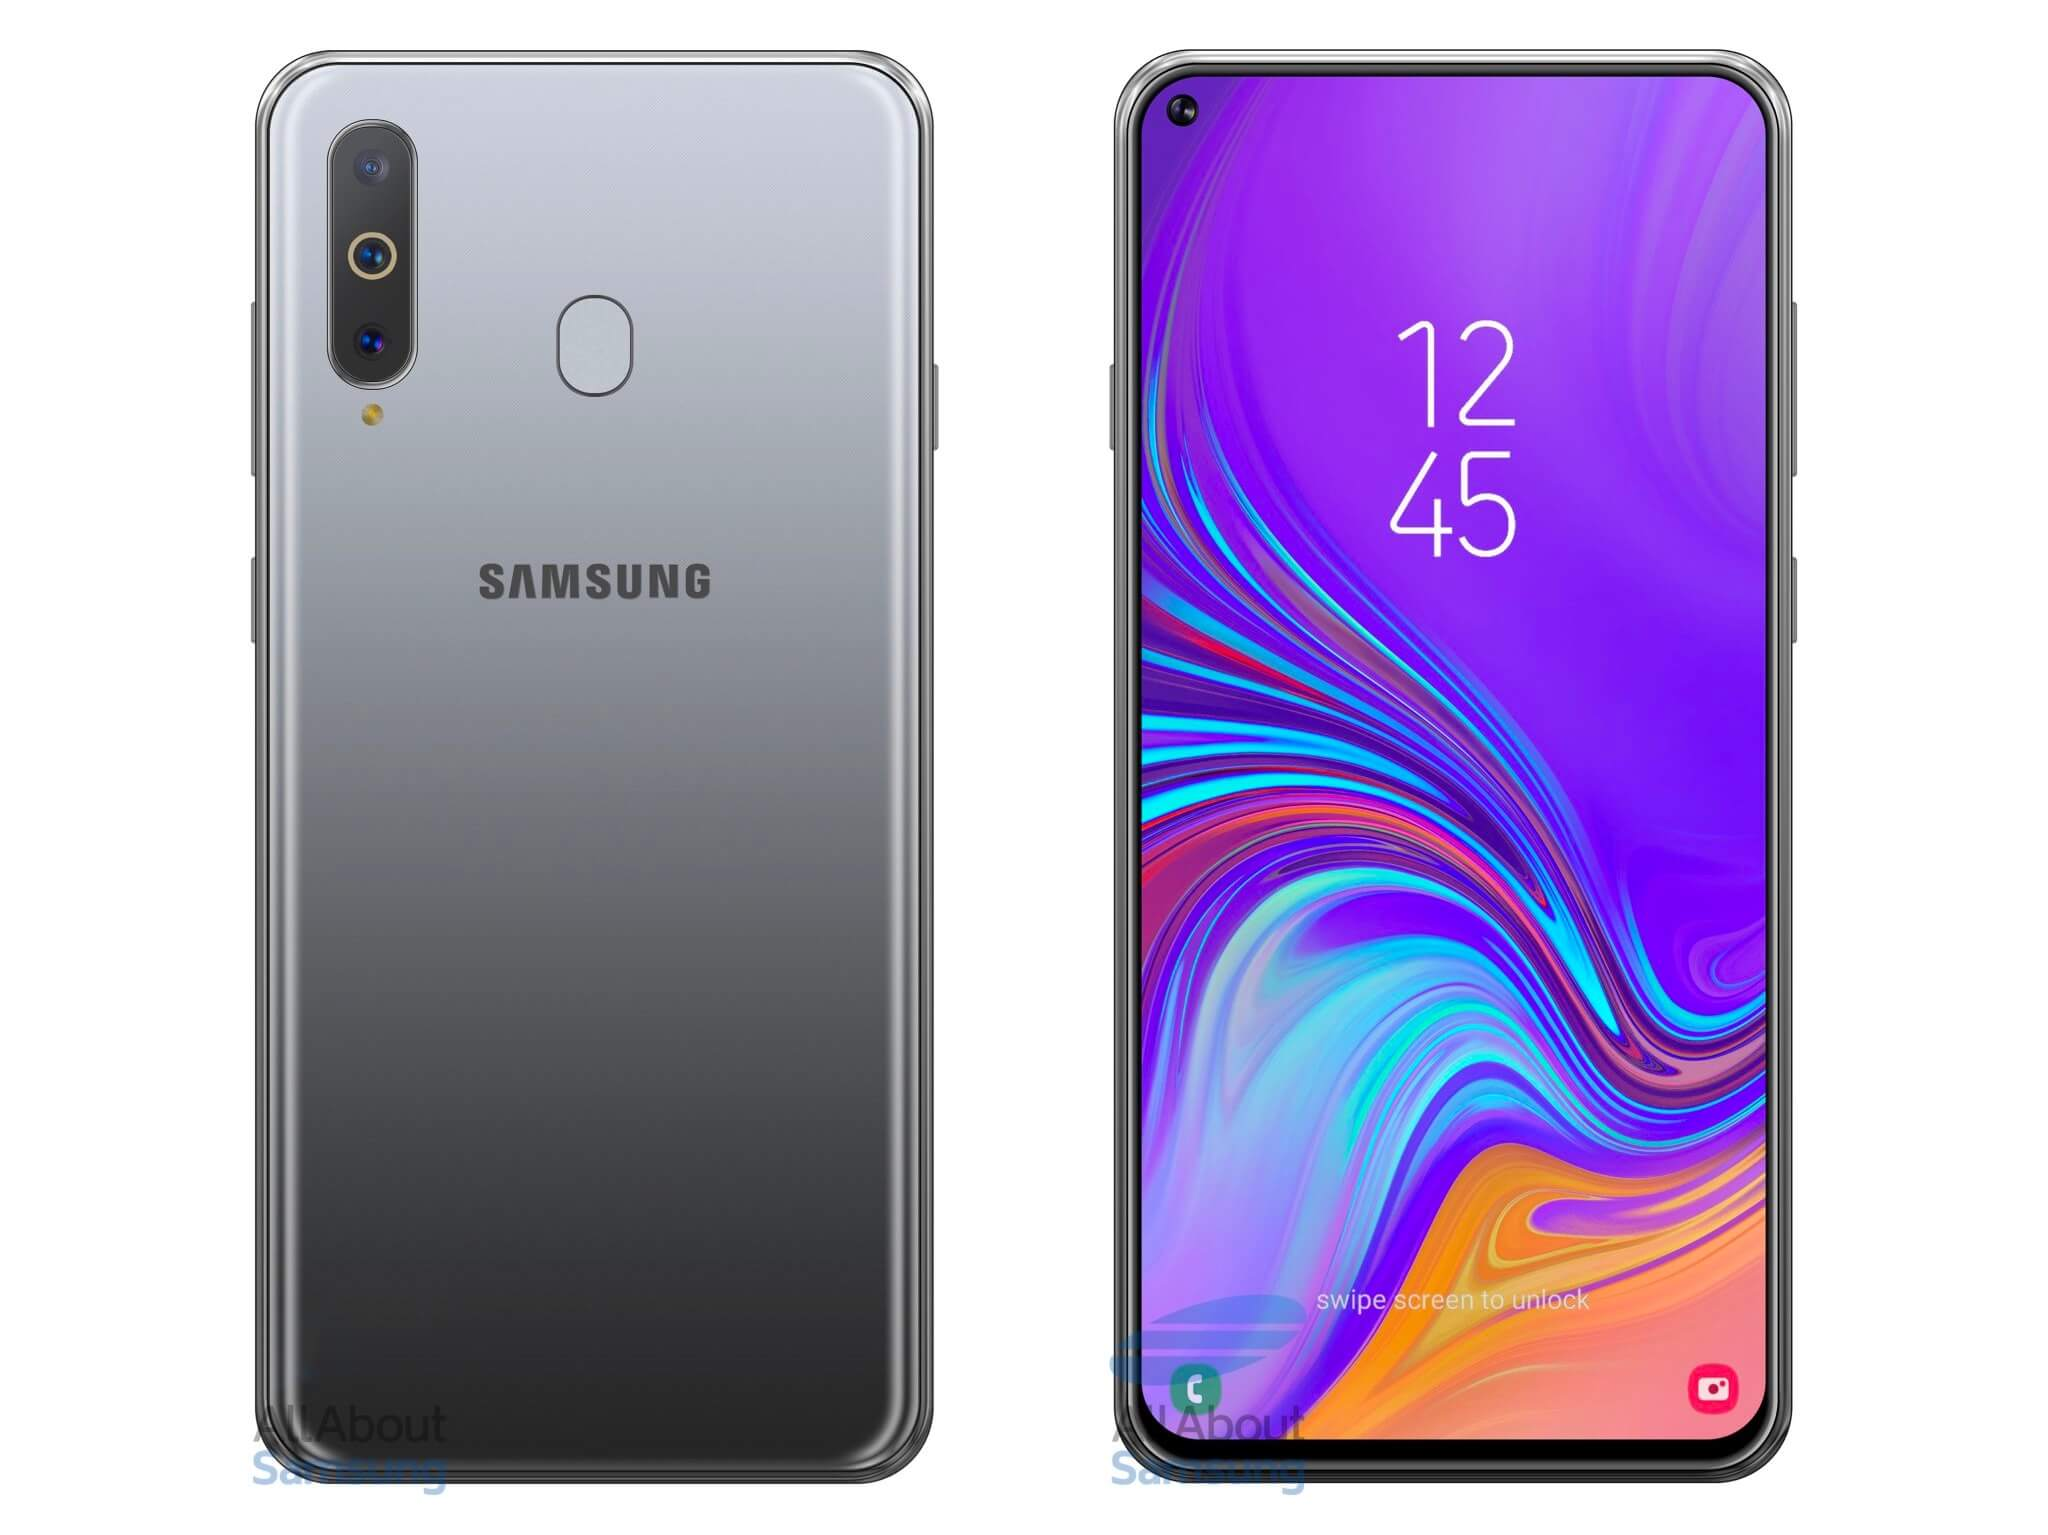 Samsung Galaxy S10 screen sizes revealed